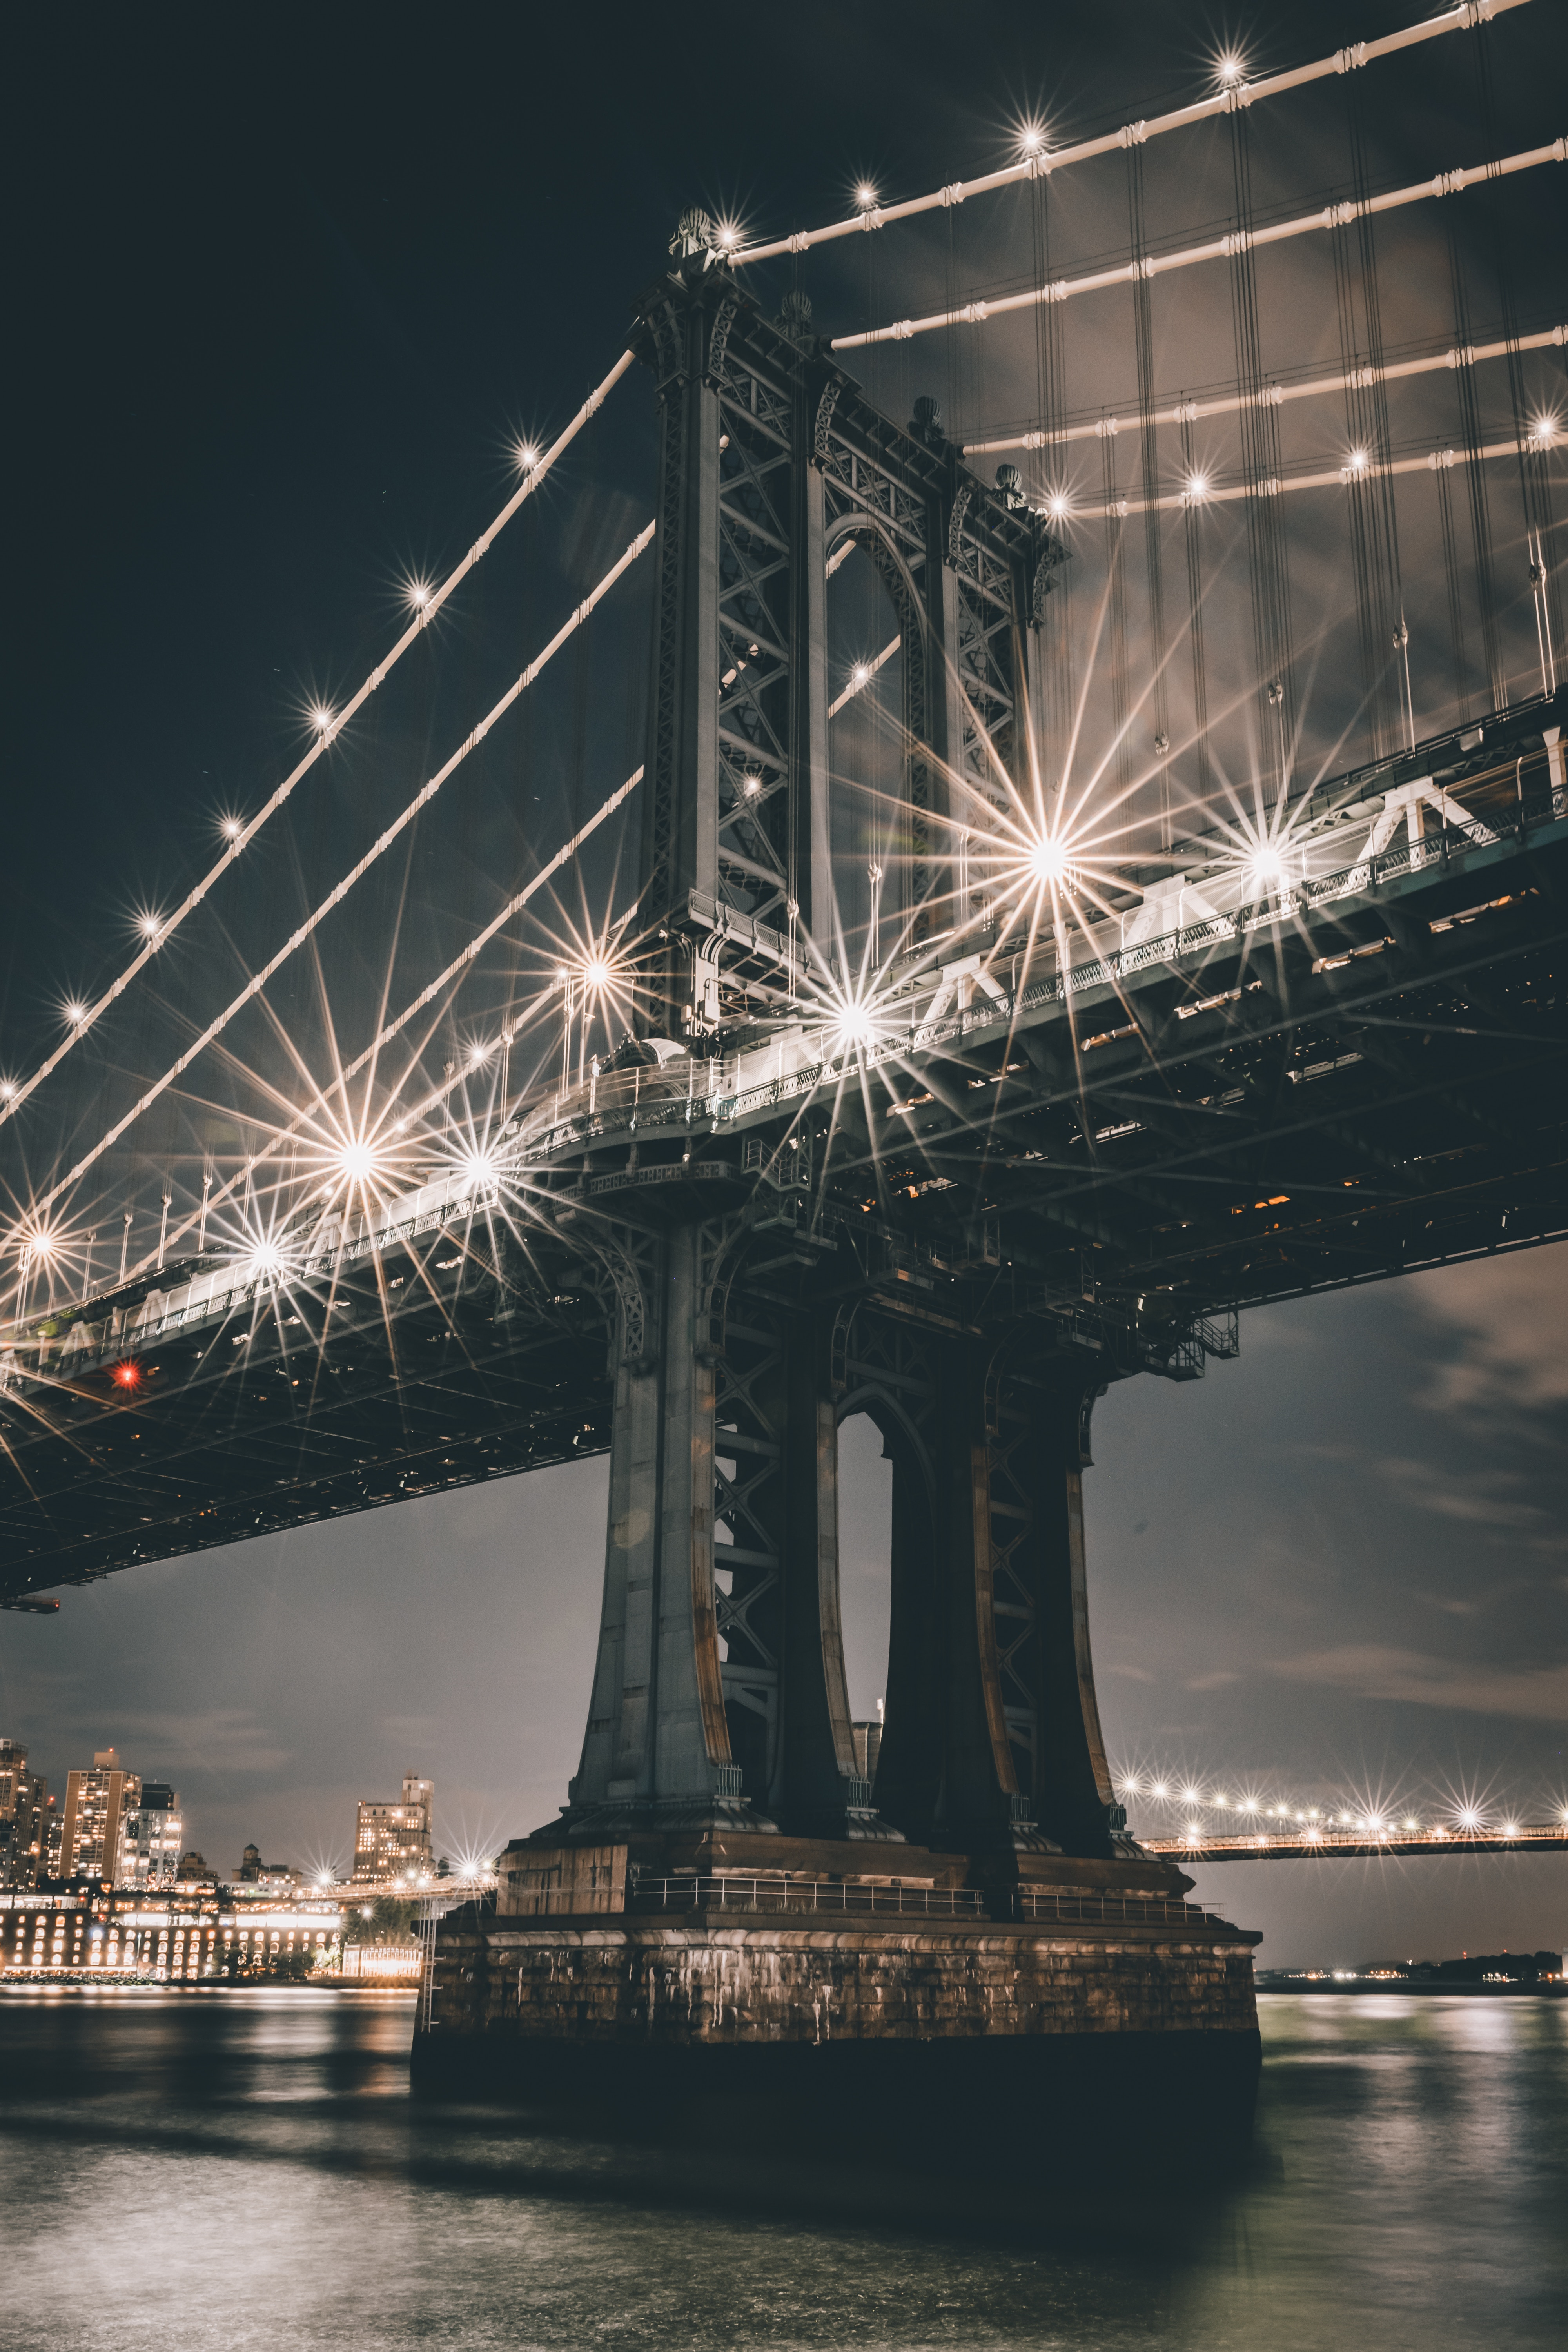 79385 free wallpaper 2160x3840 for phone, download images Cities, Rivers, Architecture, City, Lights, Lanterns, Bridge, Construction, Support 2160x3840 for mobile